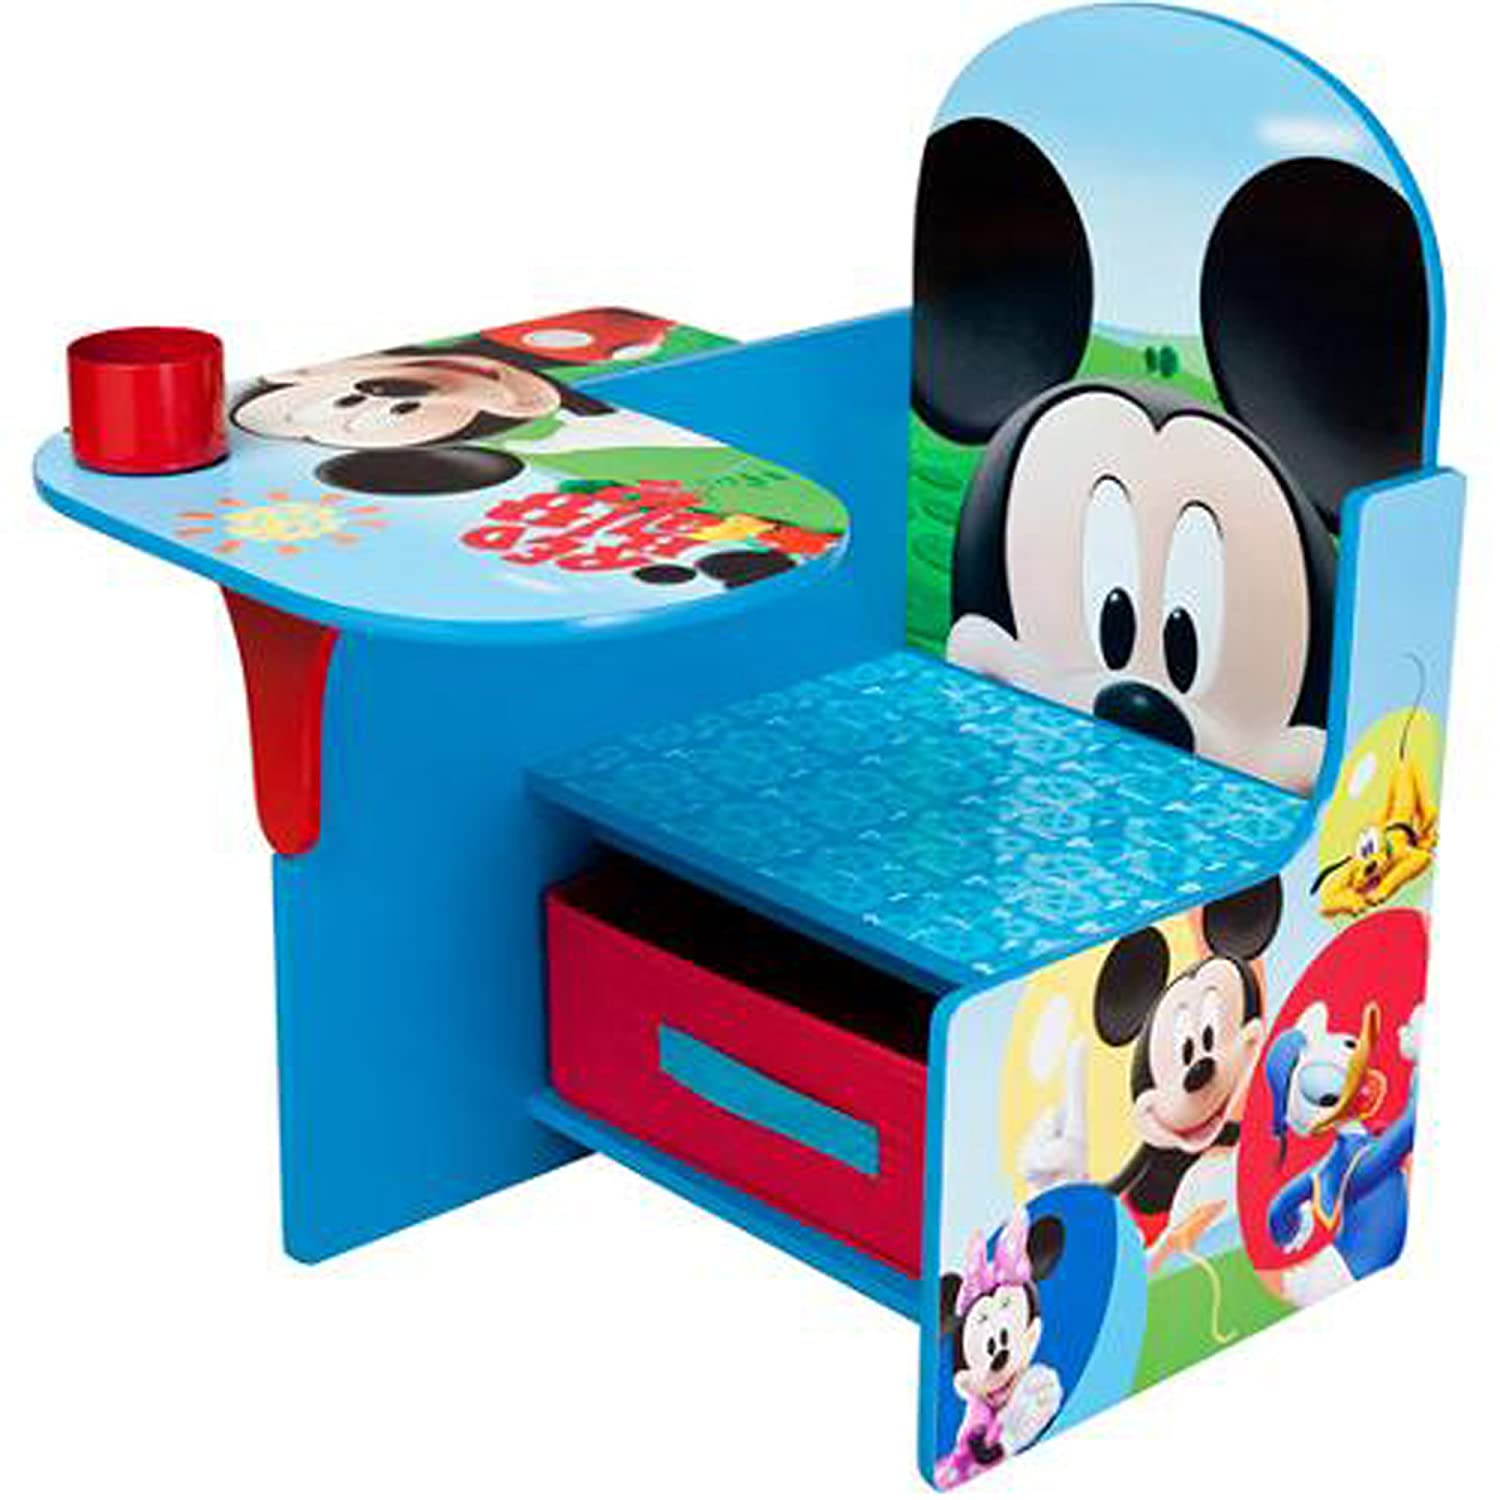 Study table and chair for kids - Amazon Com Disney Chair Desk With Storage Bin Mickey Mouse Characters Desk Set Fabric Storage Bin Seat Extra Storage Table Desk Chair Mdf Construction